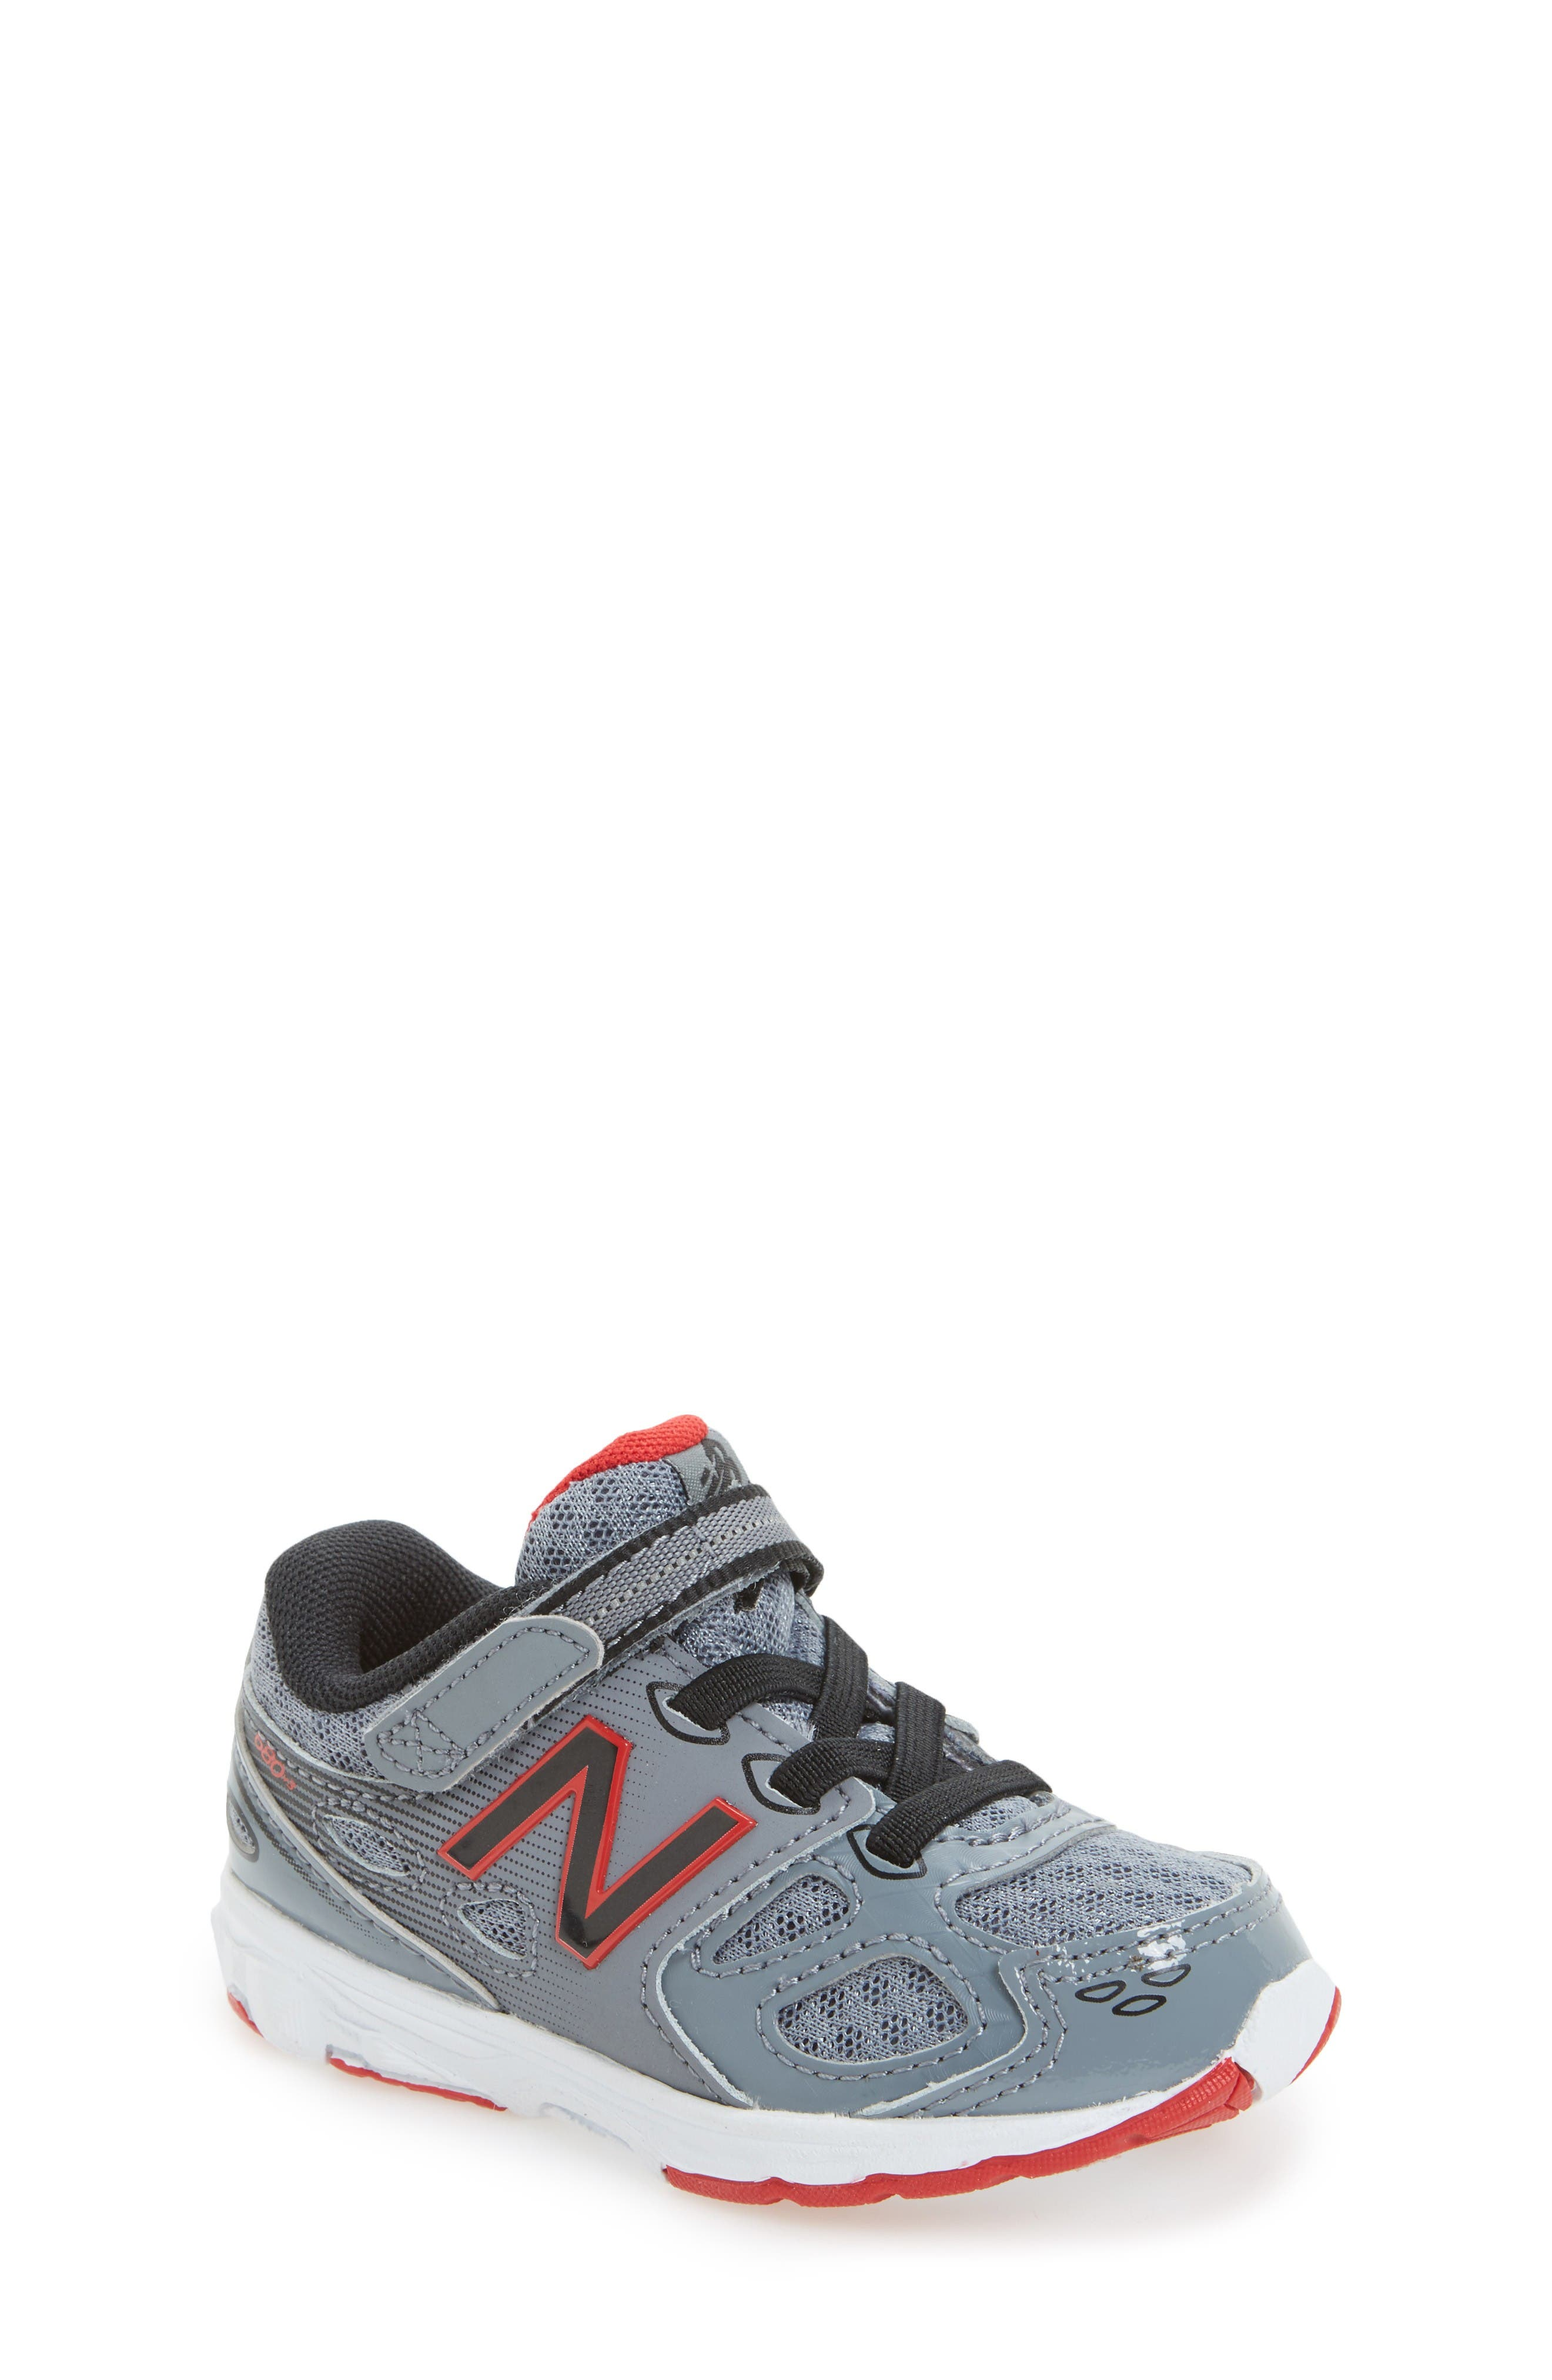 New Balance 680v3 Sneaker (Baby, Walker, Toddler, Little Kid & Big Kid)